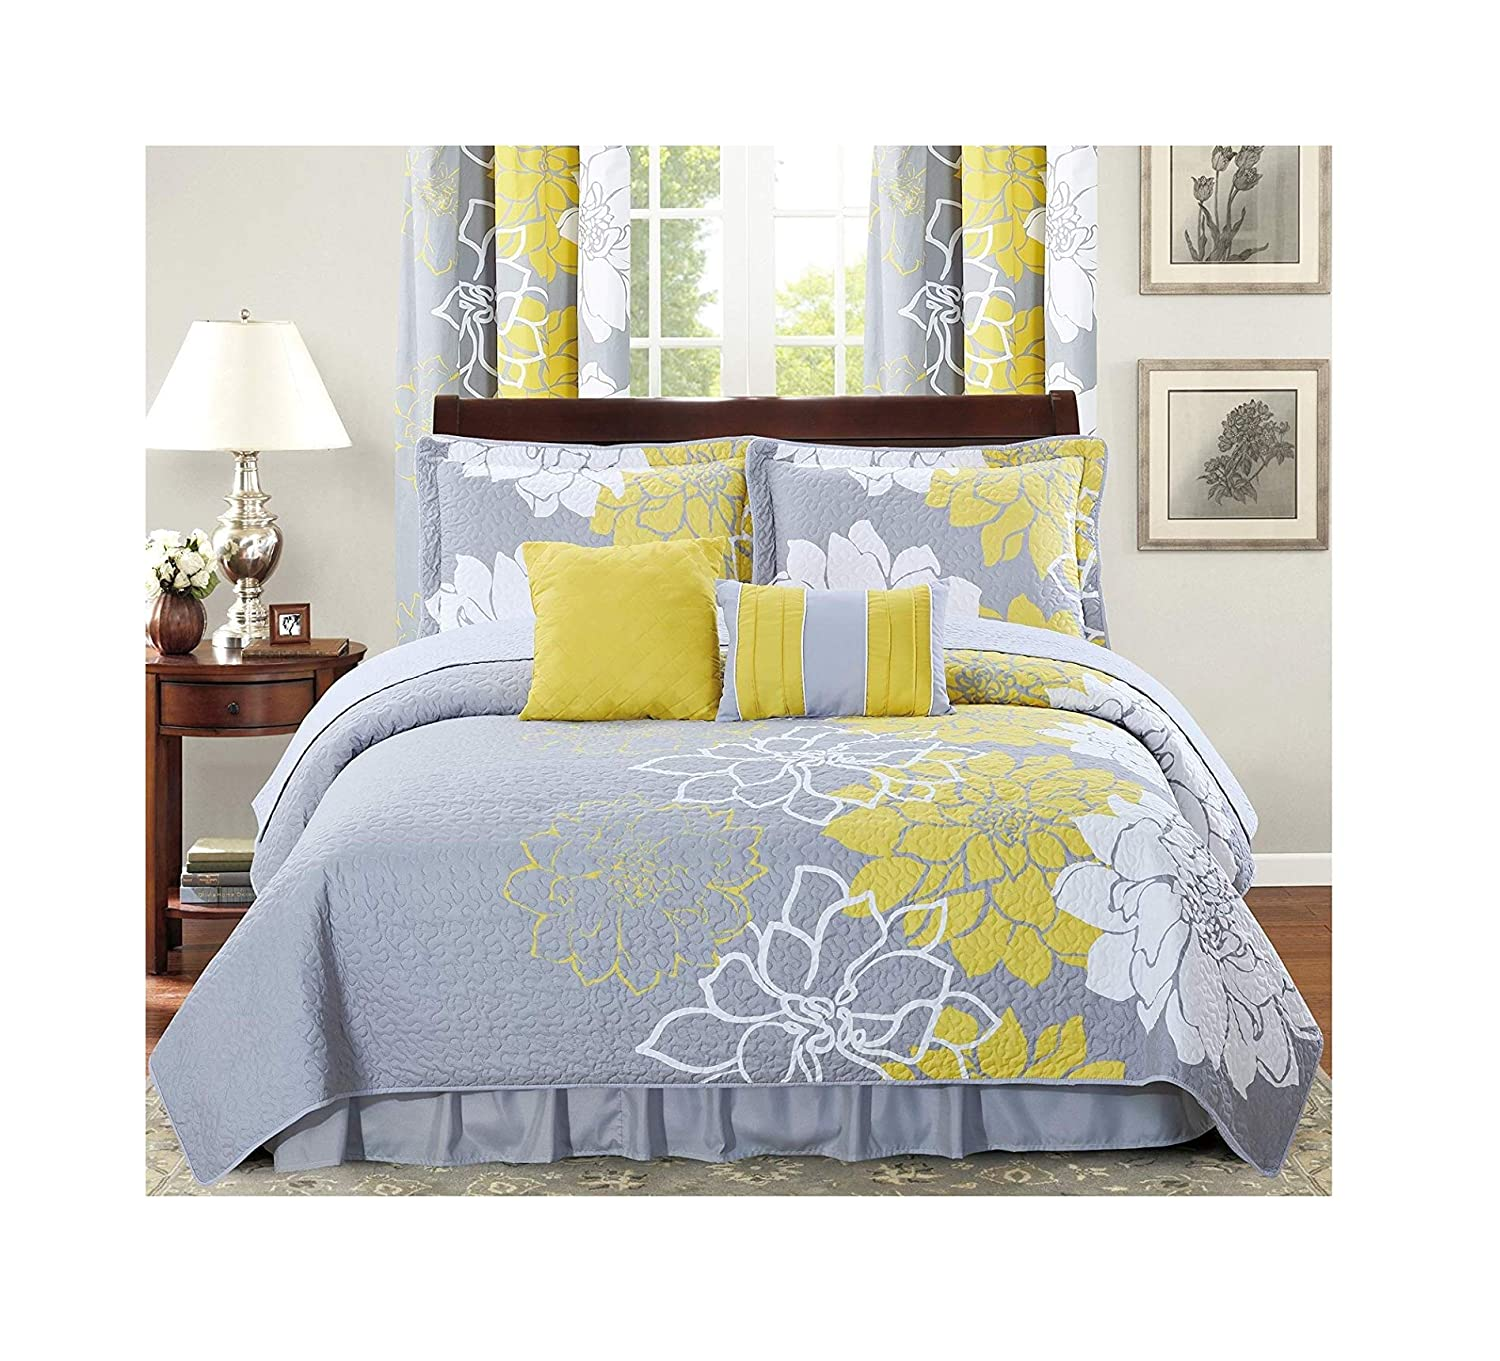 All American Collection New 4 Piece Printed Reversible Bedspread Set with Dust Ruffle (Yellow/Grey, Twin